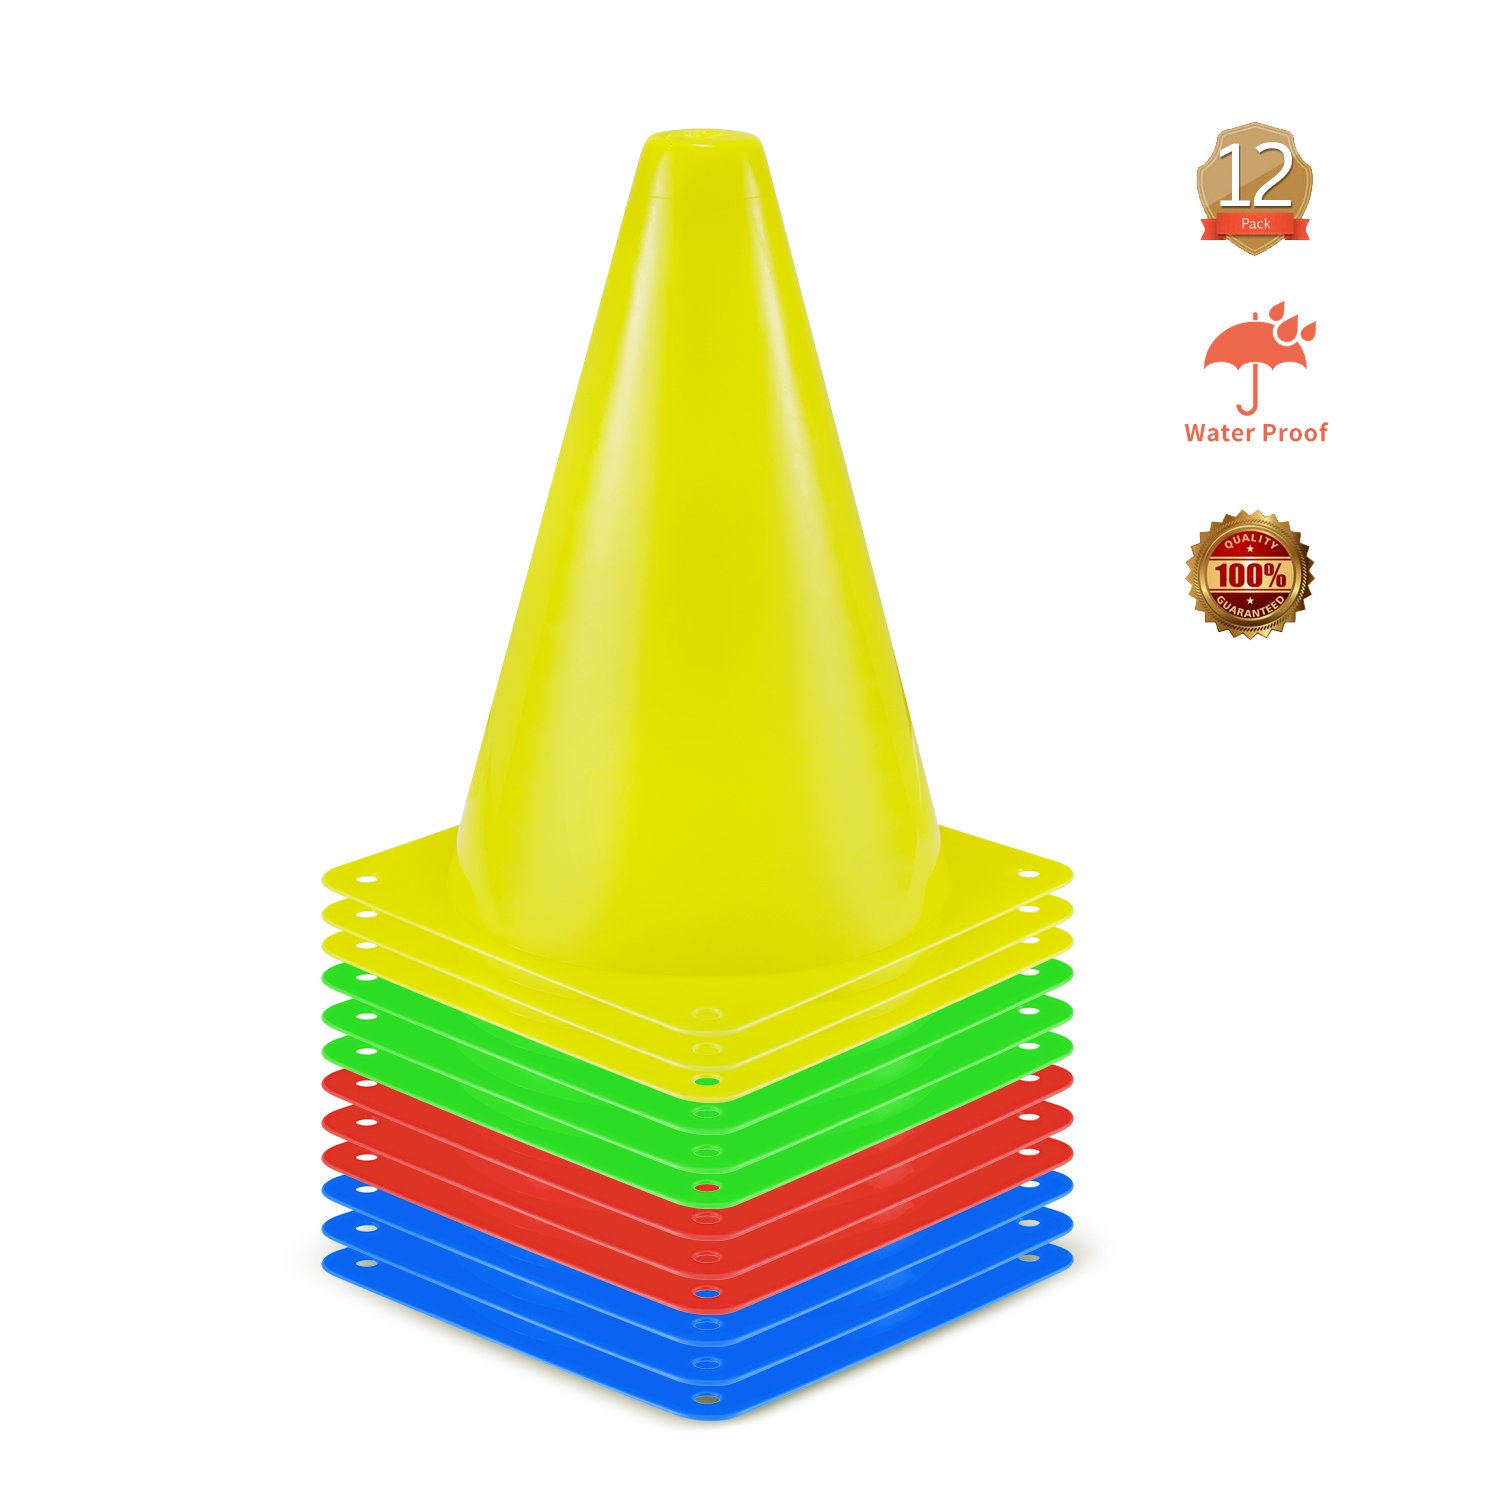 KUYOU Training Cones, Field Marker Cones Plastic Sport Training Traffic Cone for Skate Soccer and Outdoor Agility Training -7 inch Pack of 12